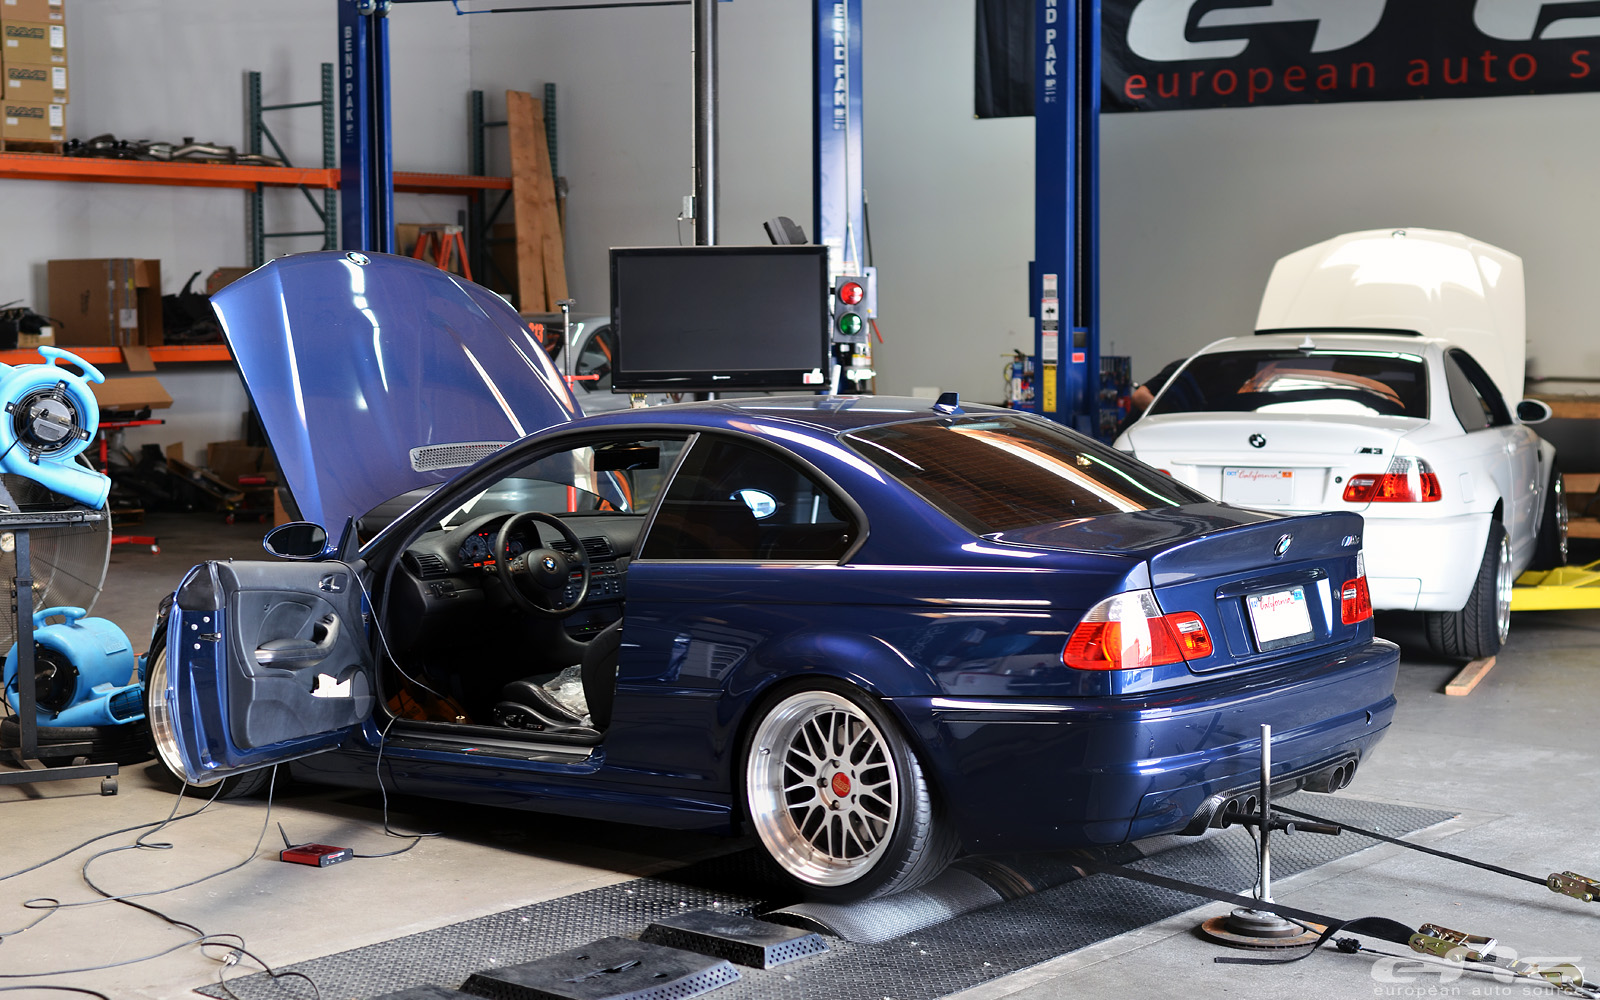 Le Mans Blue Bmw E46 M3 Supercharged At Eas Autoevolution